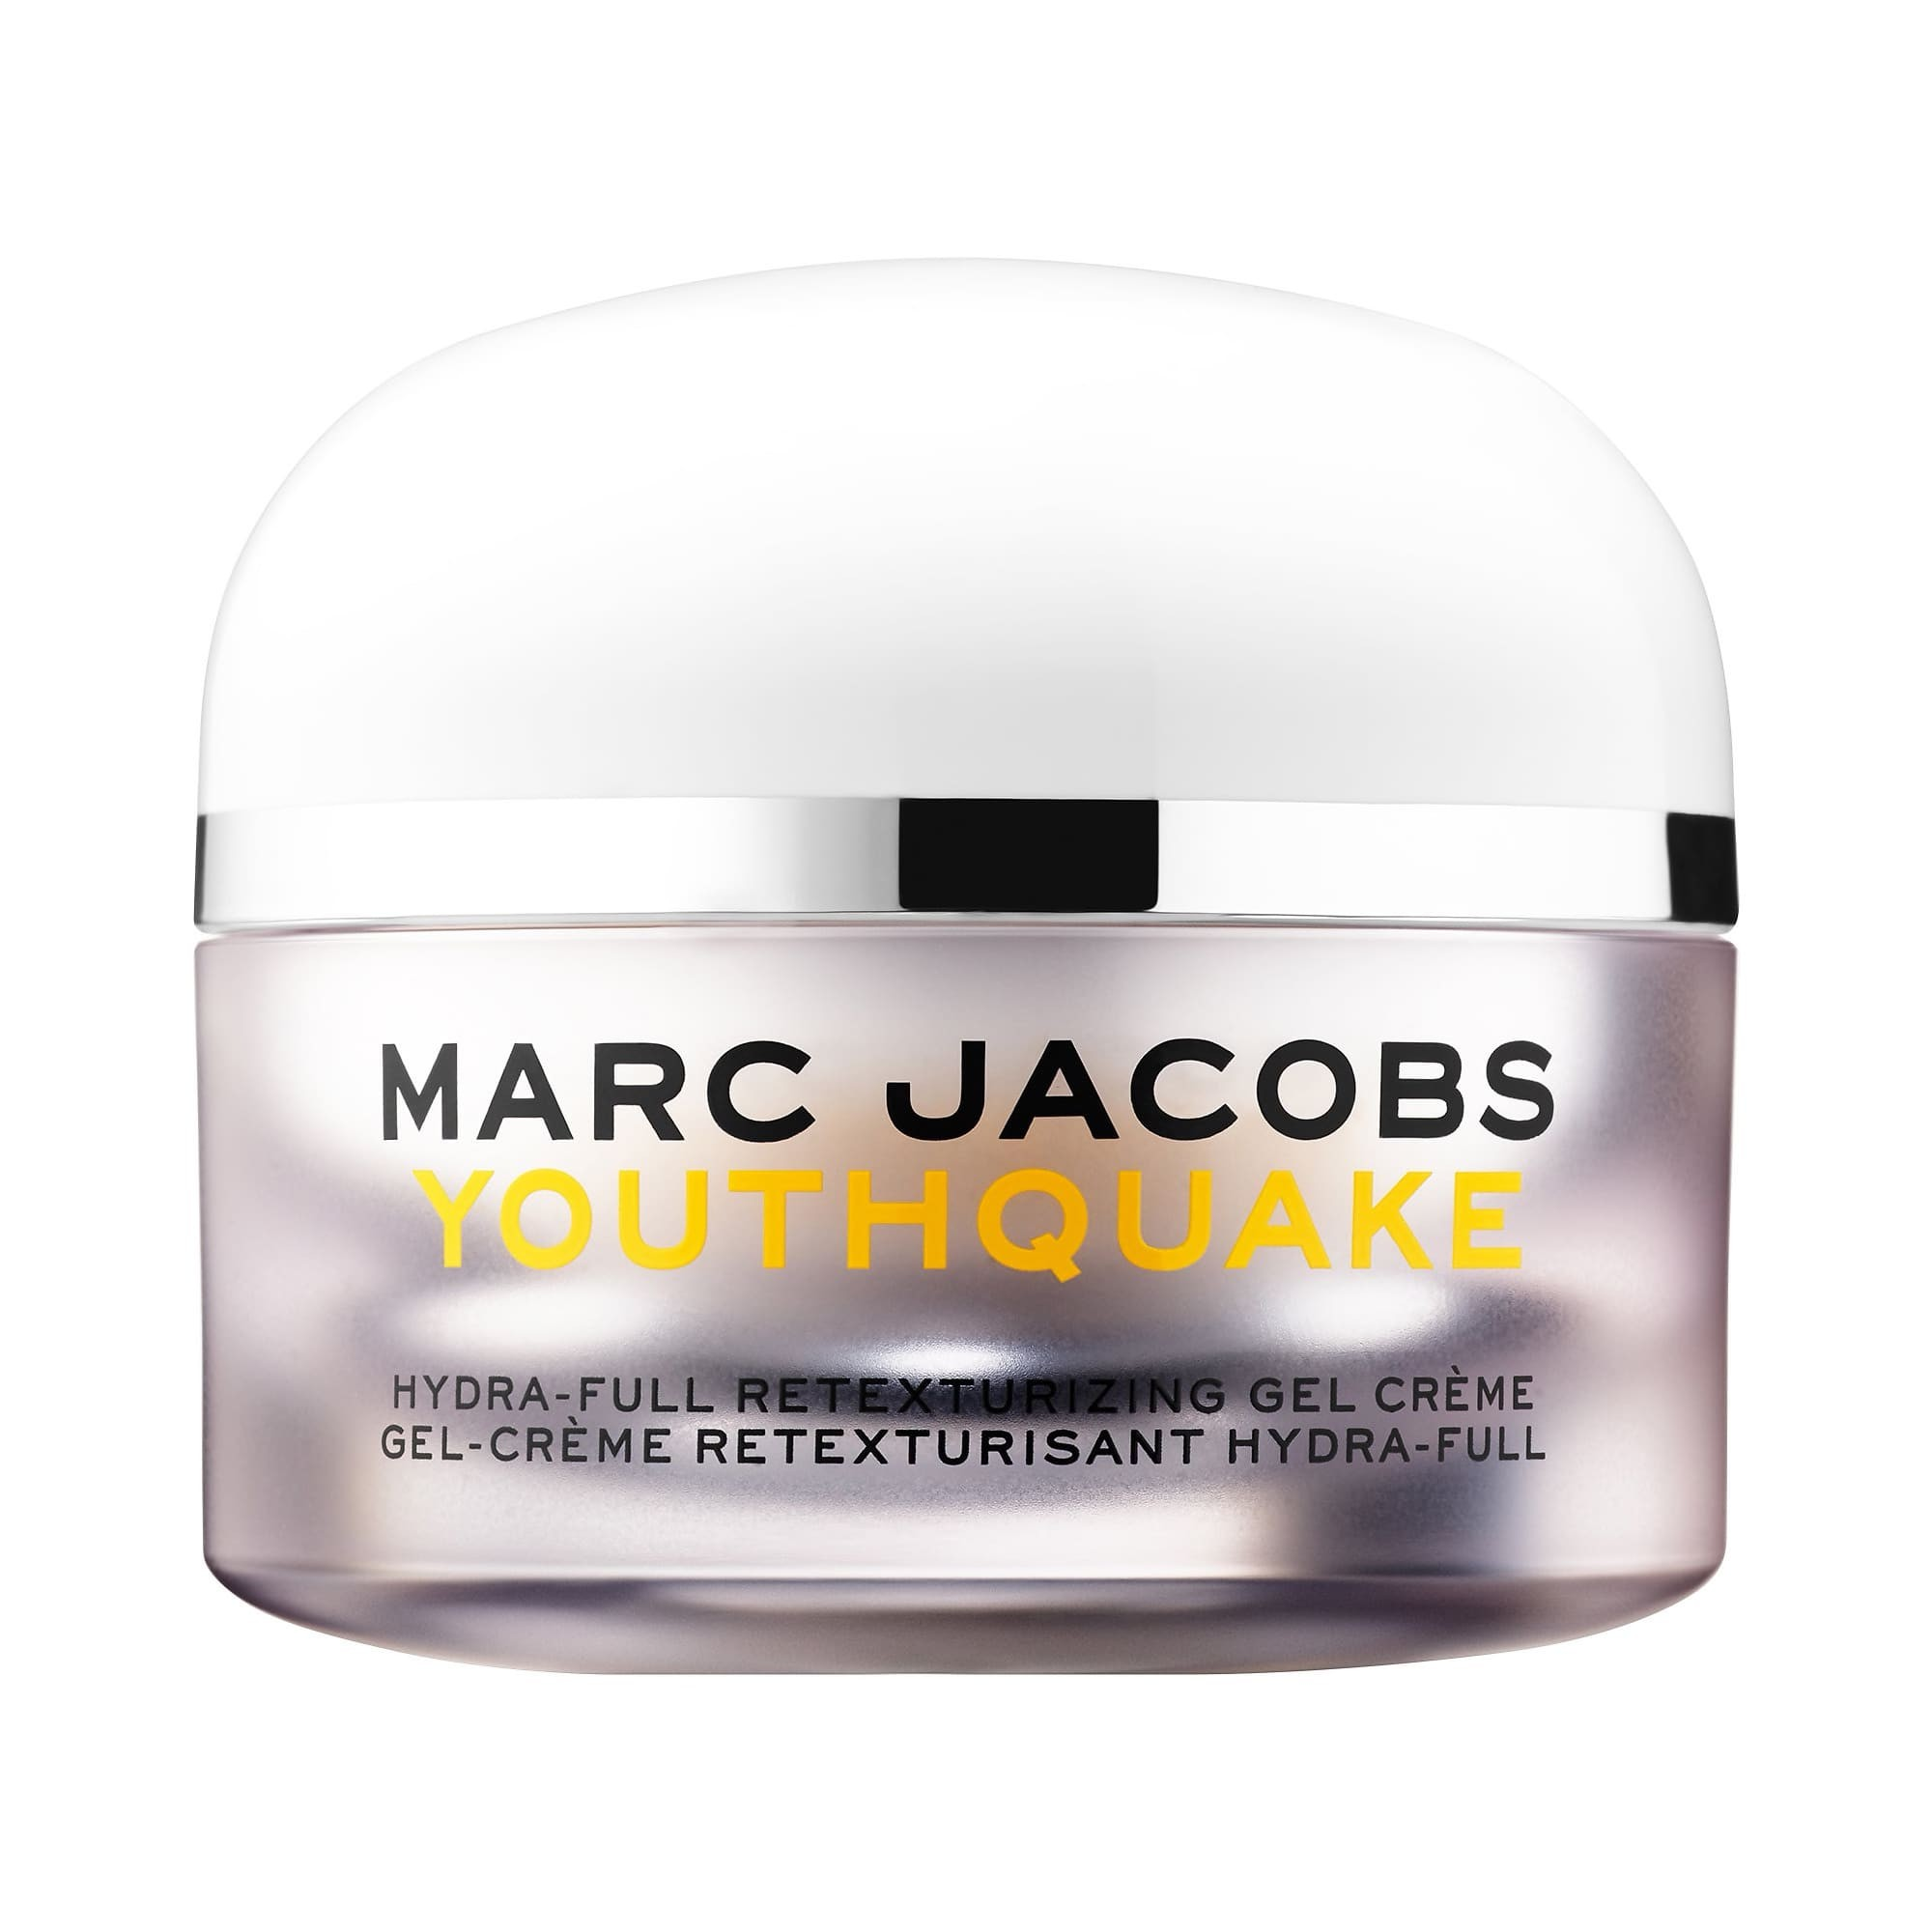 Marc Jacobs Beauty Youthquake Hydra-full Retexturizing Gel Crème Moisturizer